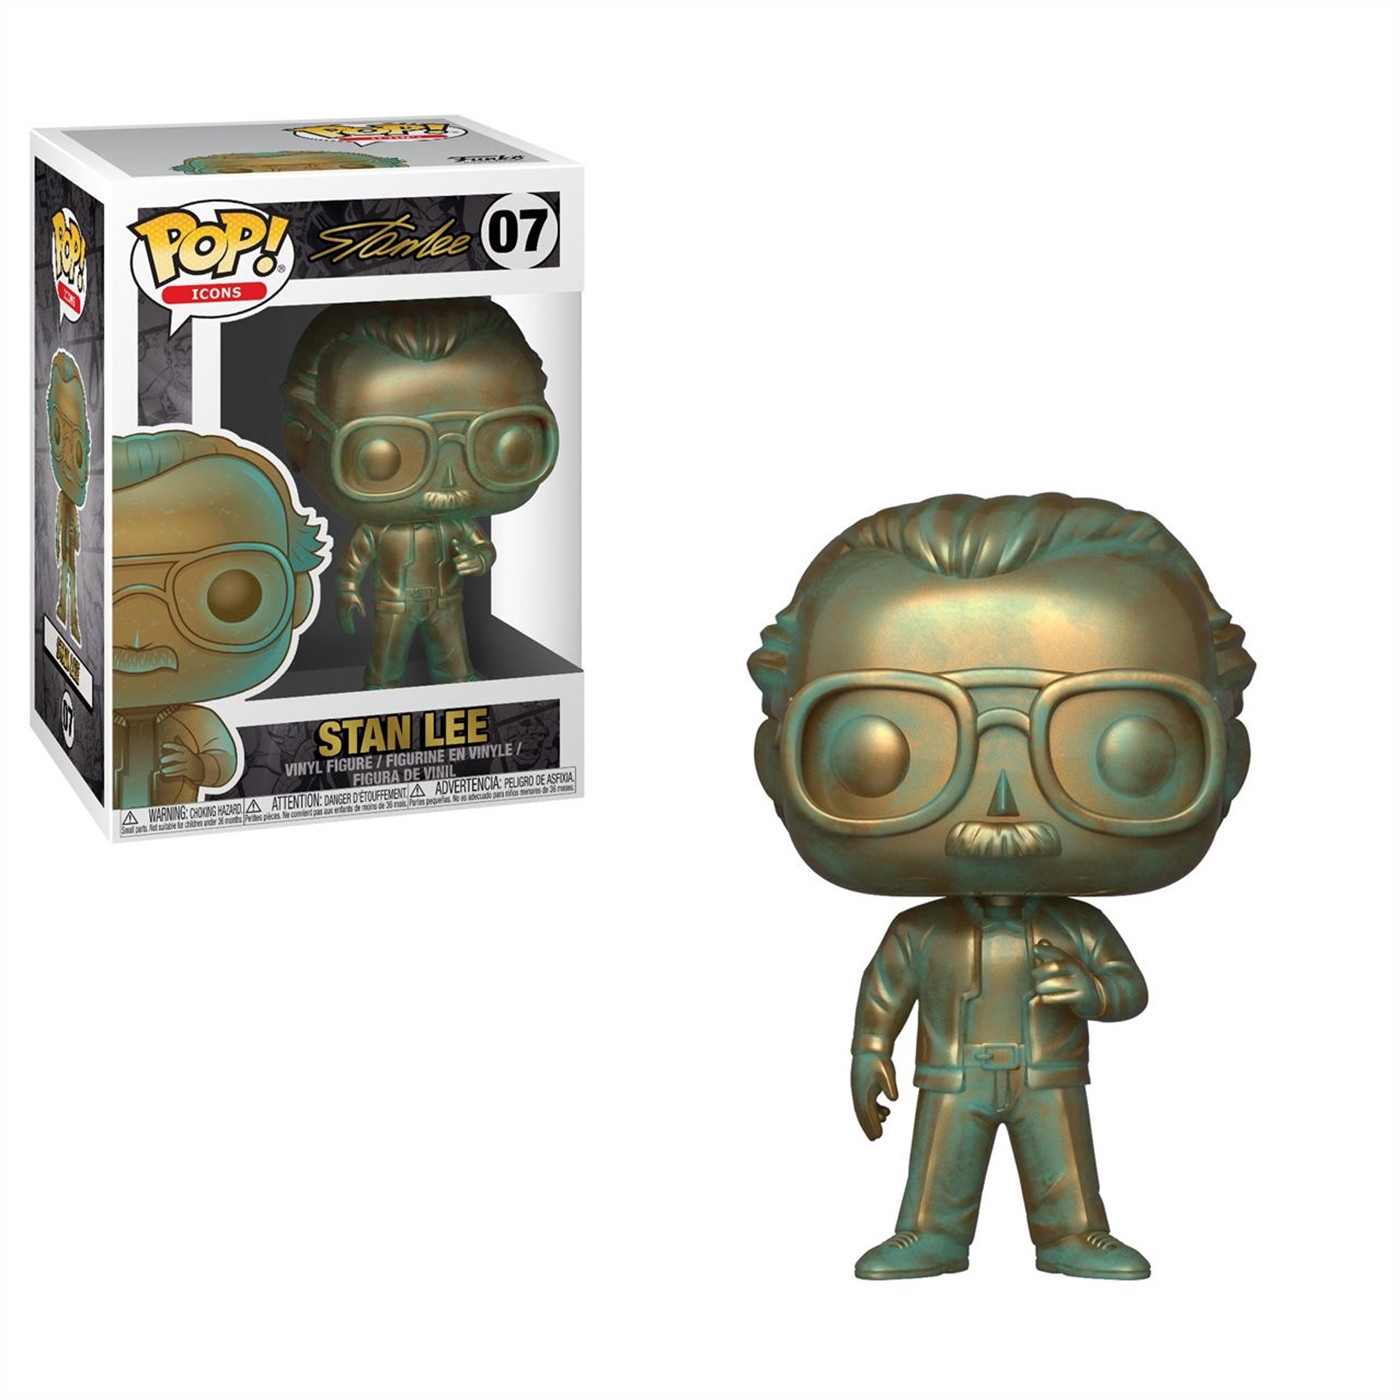 Stan Lee Funko Pop